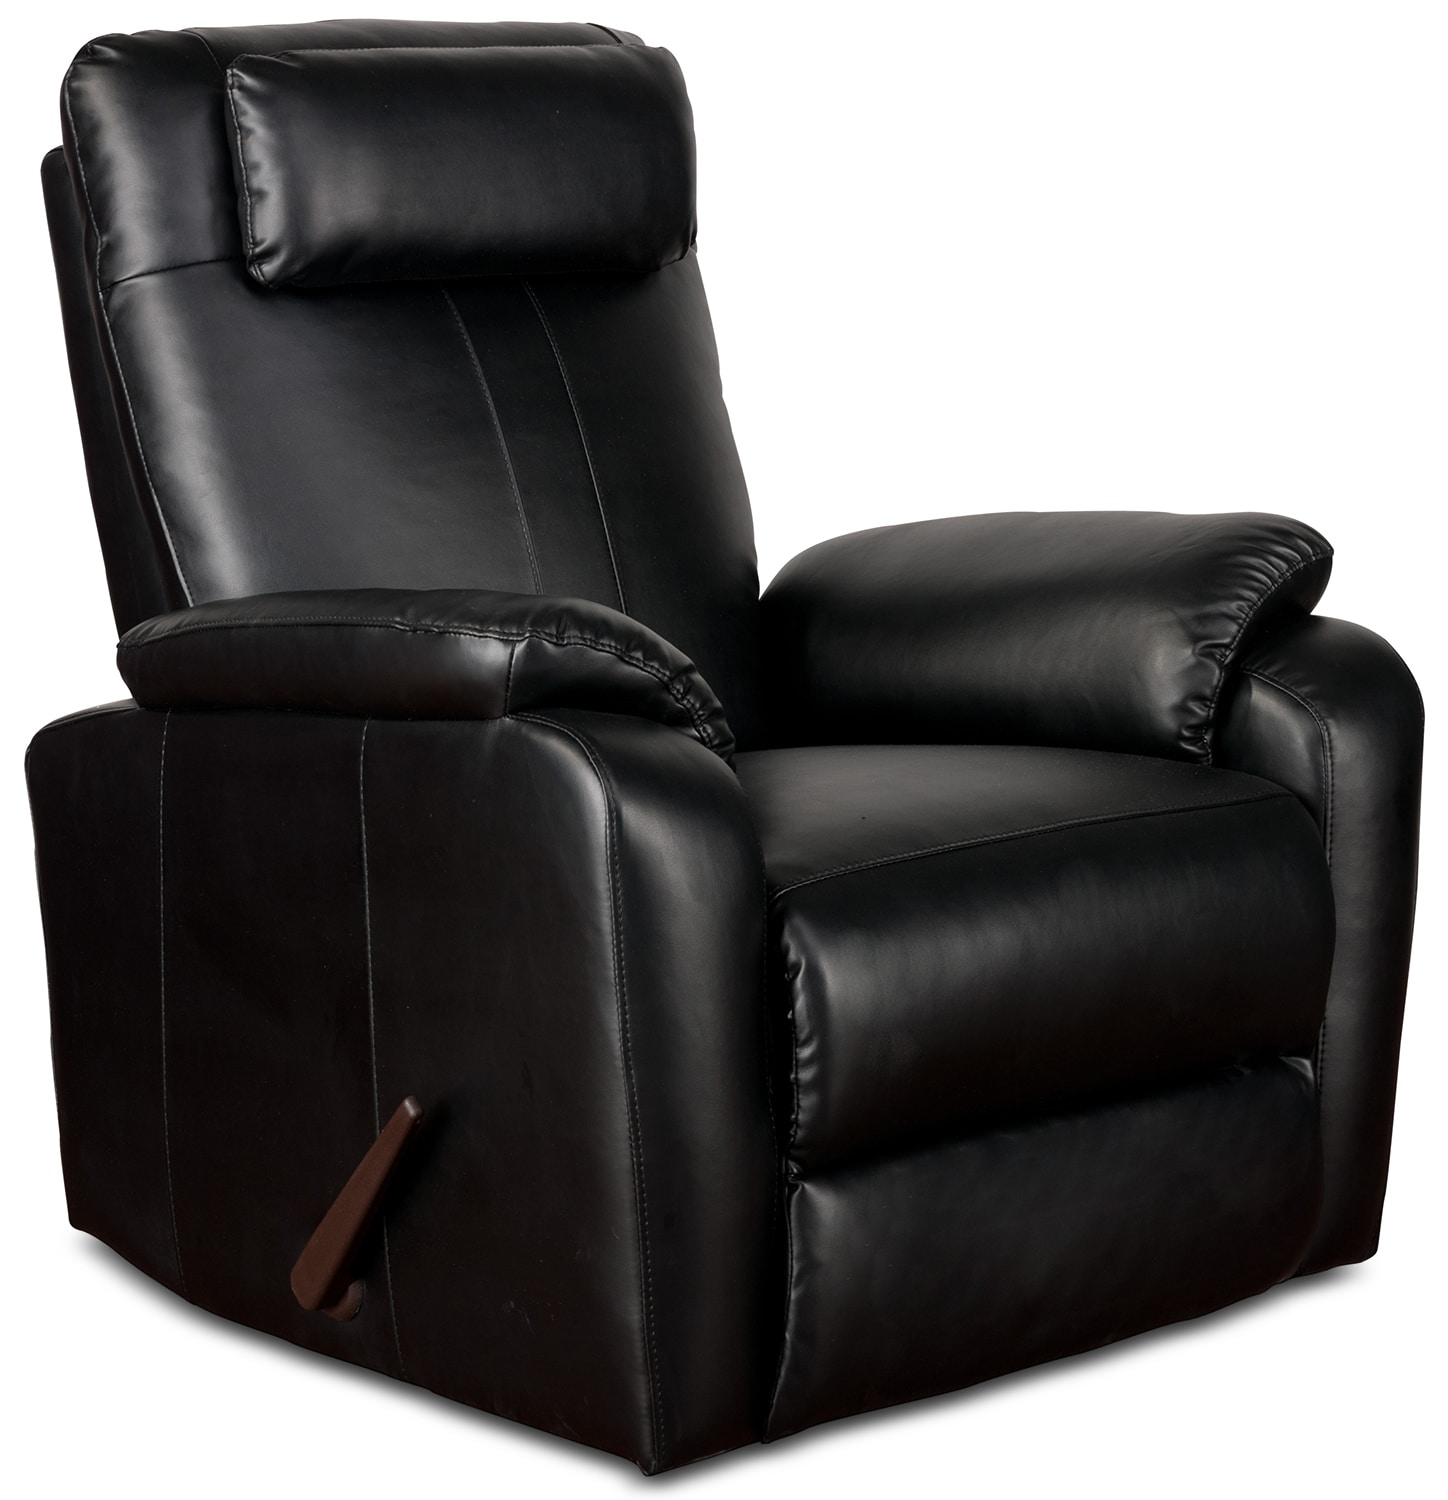 Sparta Rocker Recliner - Black  sc 1 st  Value City Furniture & Recliners u0026 Rockers | Value City Furniture | Value City Furniture ... islam-shia.org